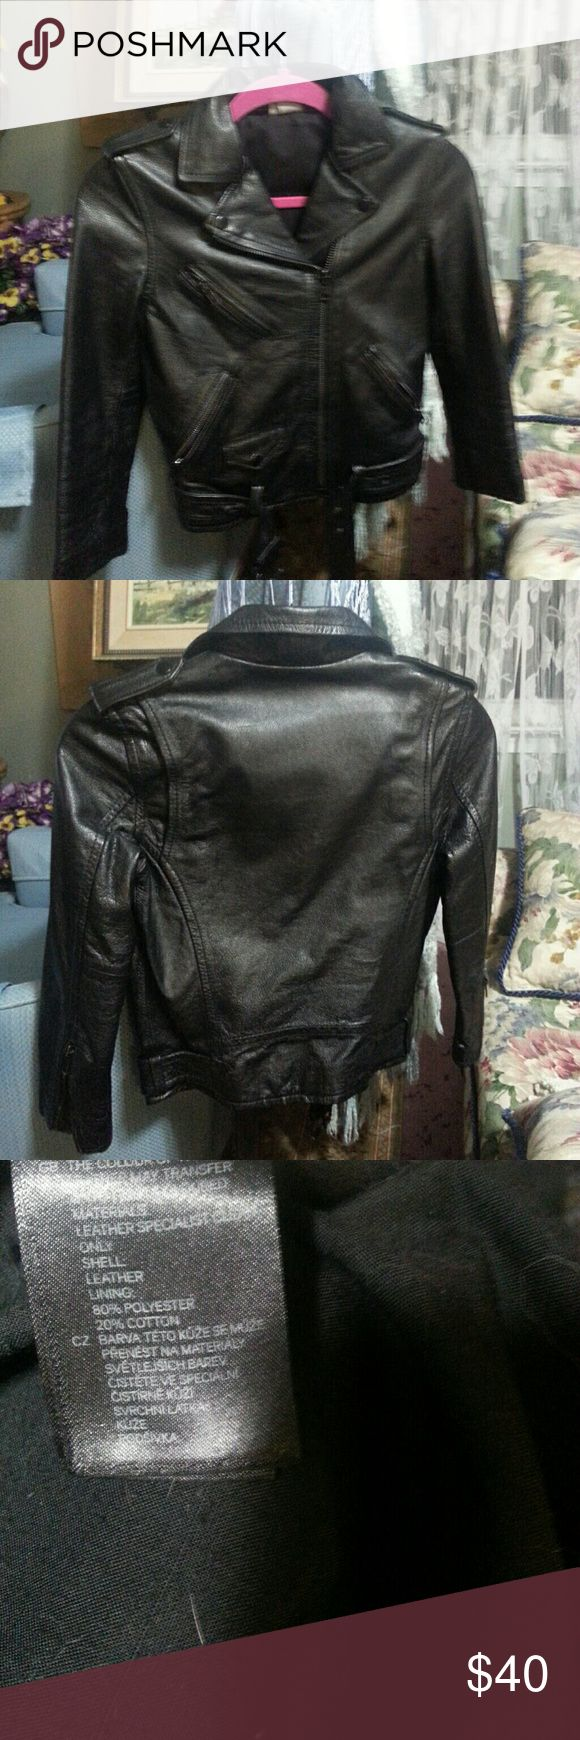 """H&M black leather cropped moto jacket This jacket says size 4 but it is like xxs. This has been re poshed and is worn.. It's tiny. The belt buckle and zippers lost black paint. The measurements are underarm to underarm is 16"""", shoulder to shoulder is 14.5:. The waist is 15"""".  From bottom of collar to the bottom of jacket on the back  of jacket is 18.5:, and the same on the front is 20:.The arm length from shoulder is 18.5"""". Arm width is 7.5"""" from shoulder to underarm.  This jacket is for…"""